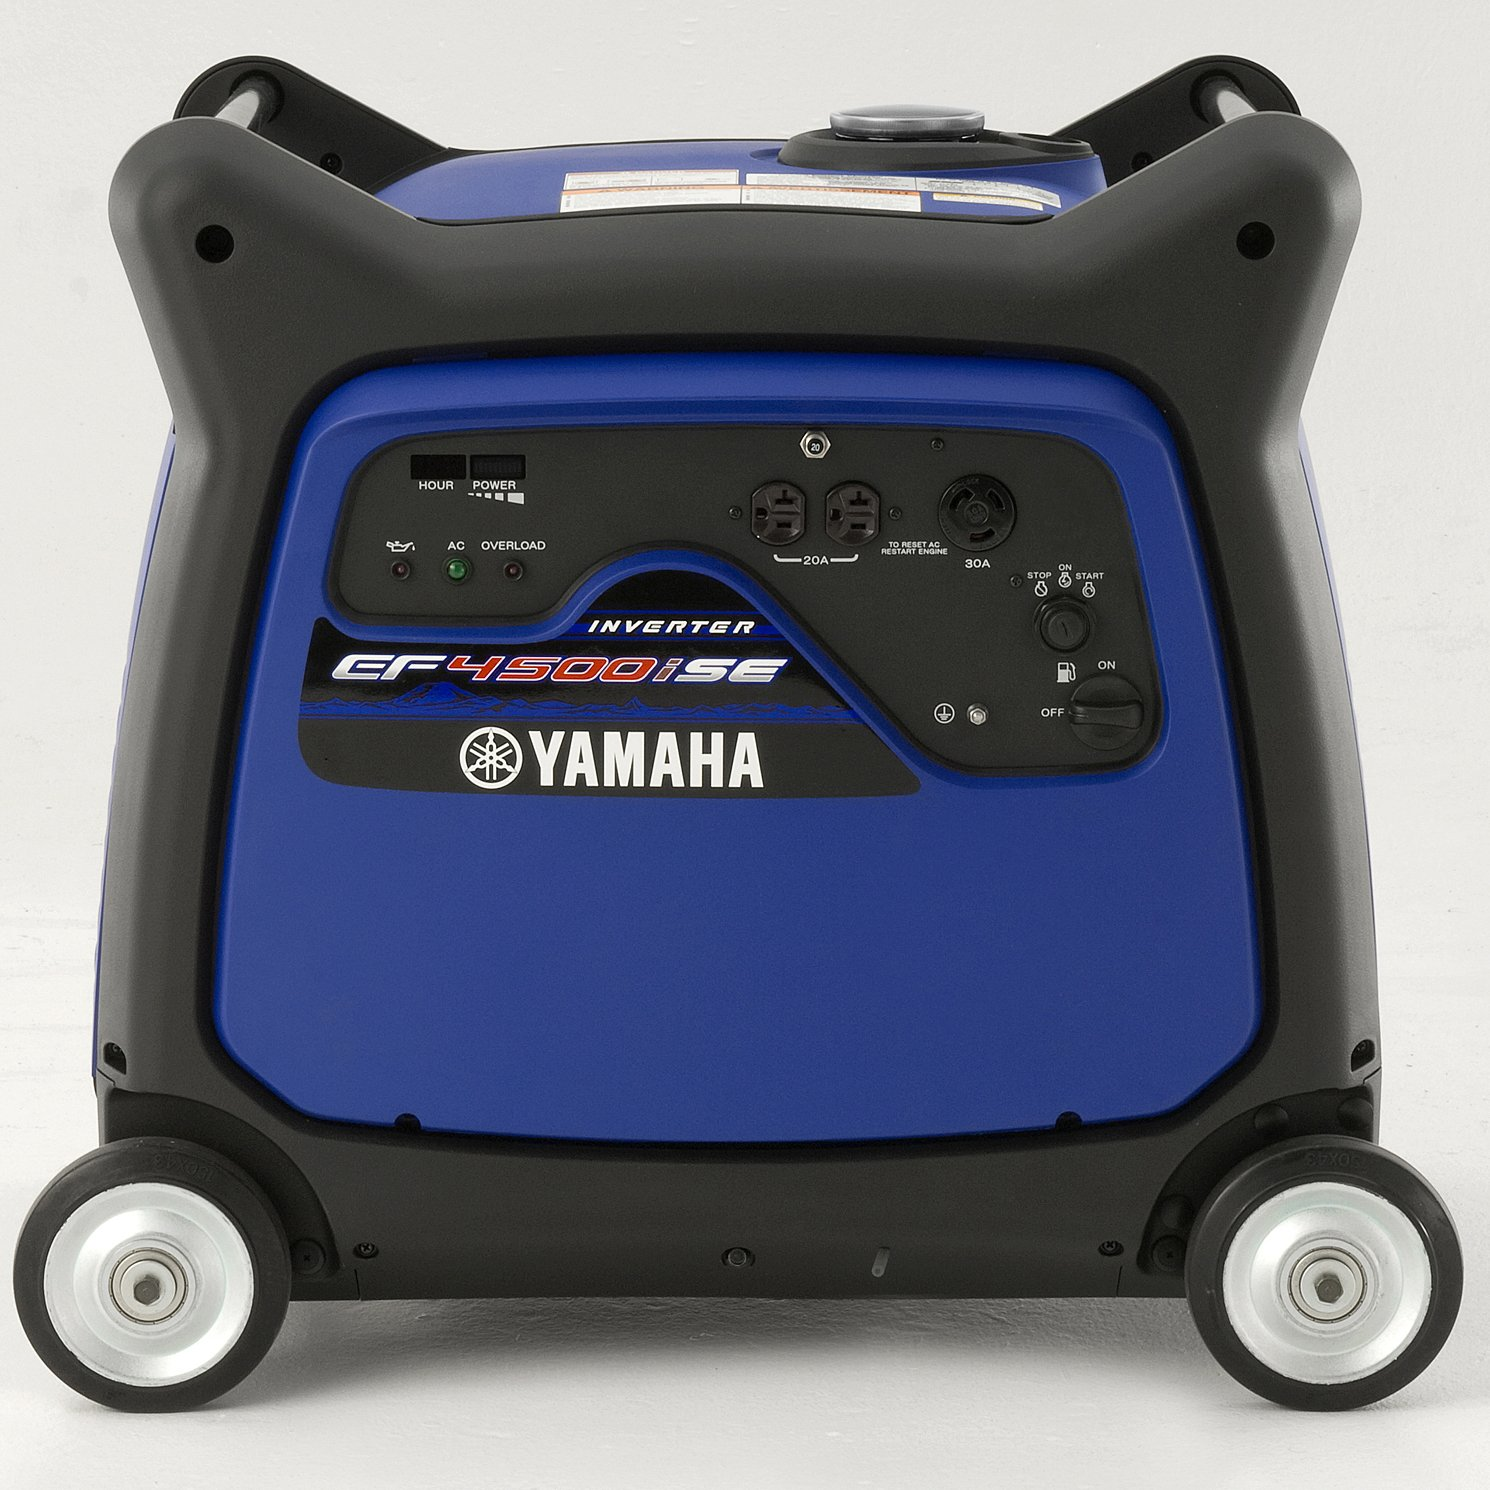 Yamaha EF4500iSE, 4000 Running Watts/4500 Starting